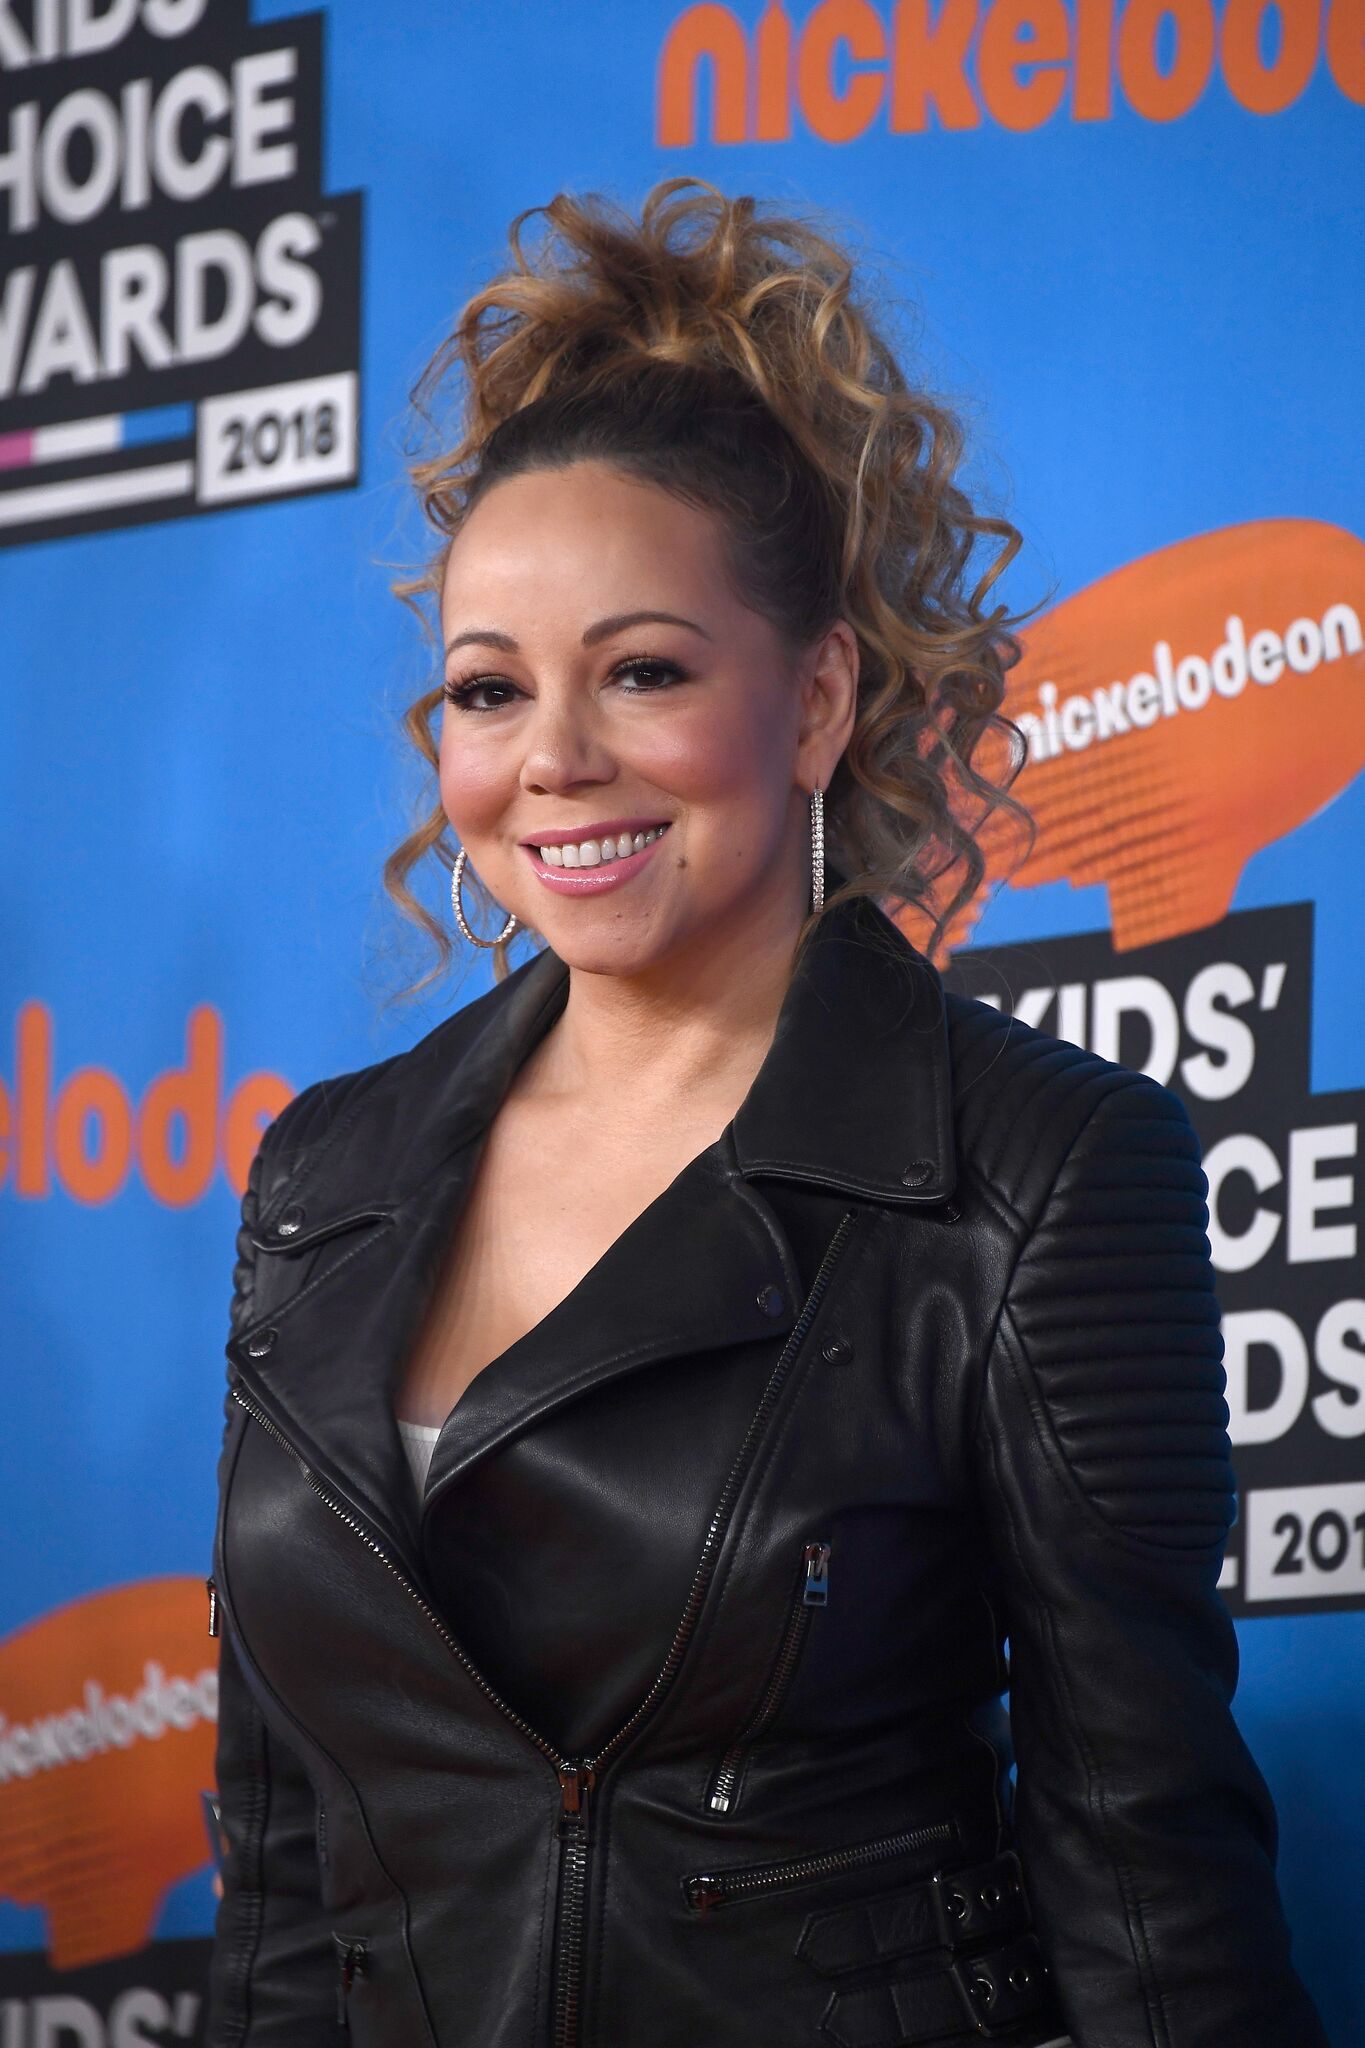 Mariah Carey attends Nickelodeon's 2018 Kids' Choice Awards at The Forum on March 24, 2018 | Photo: Getty Images